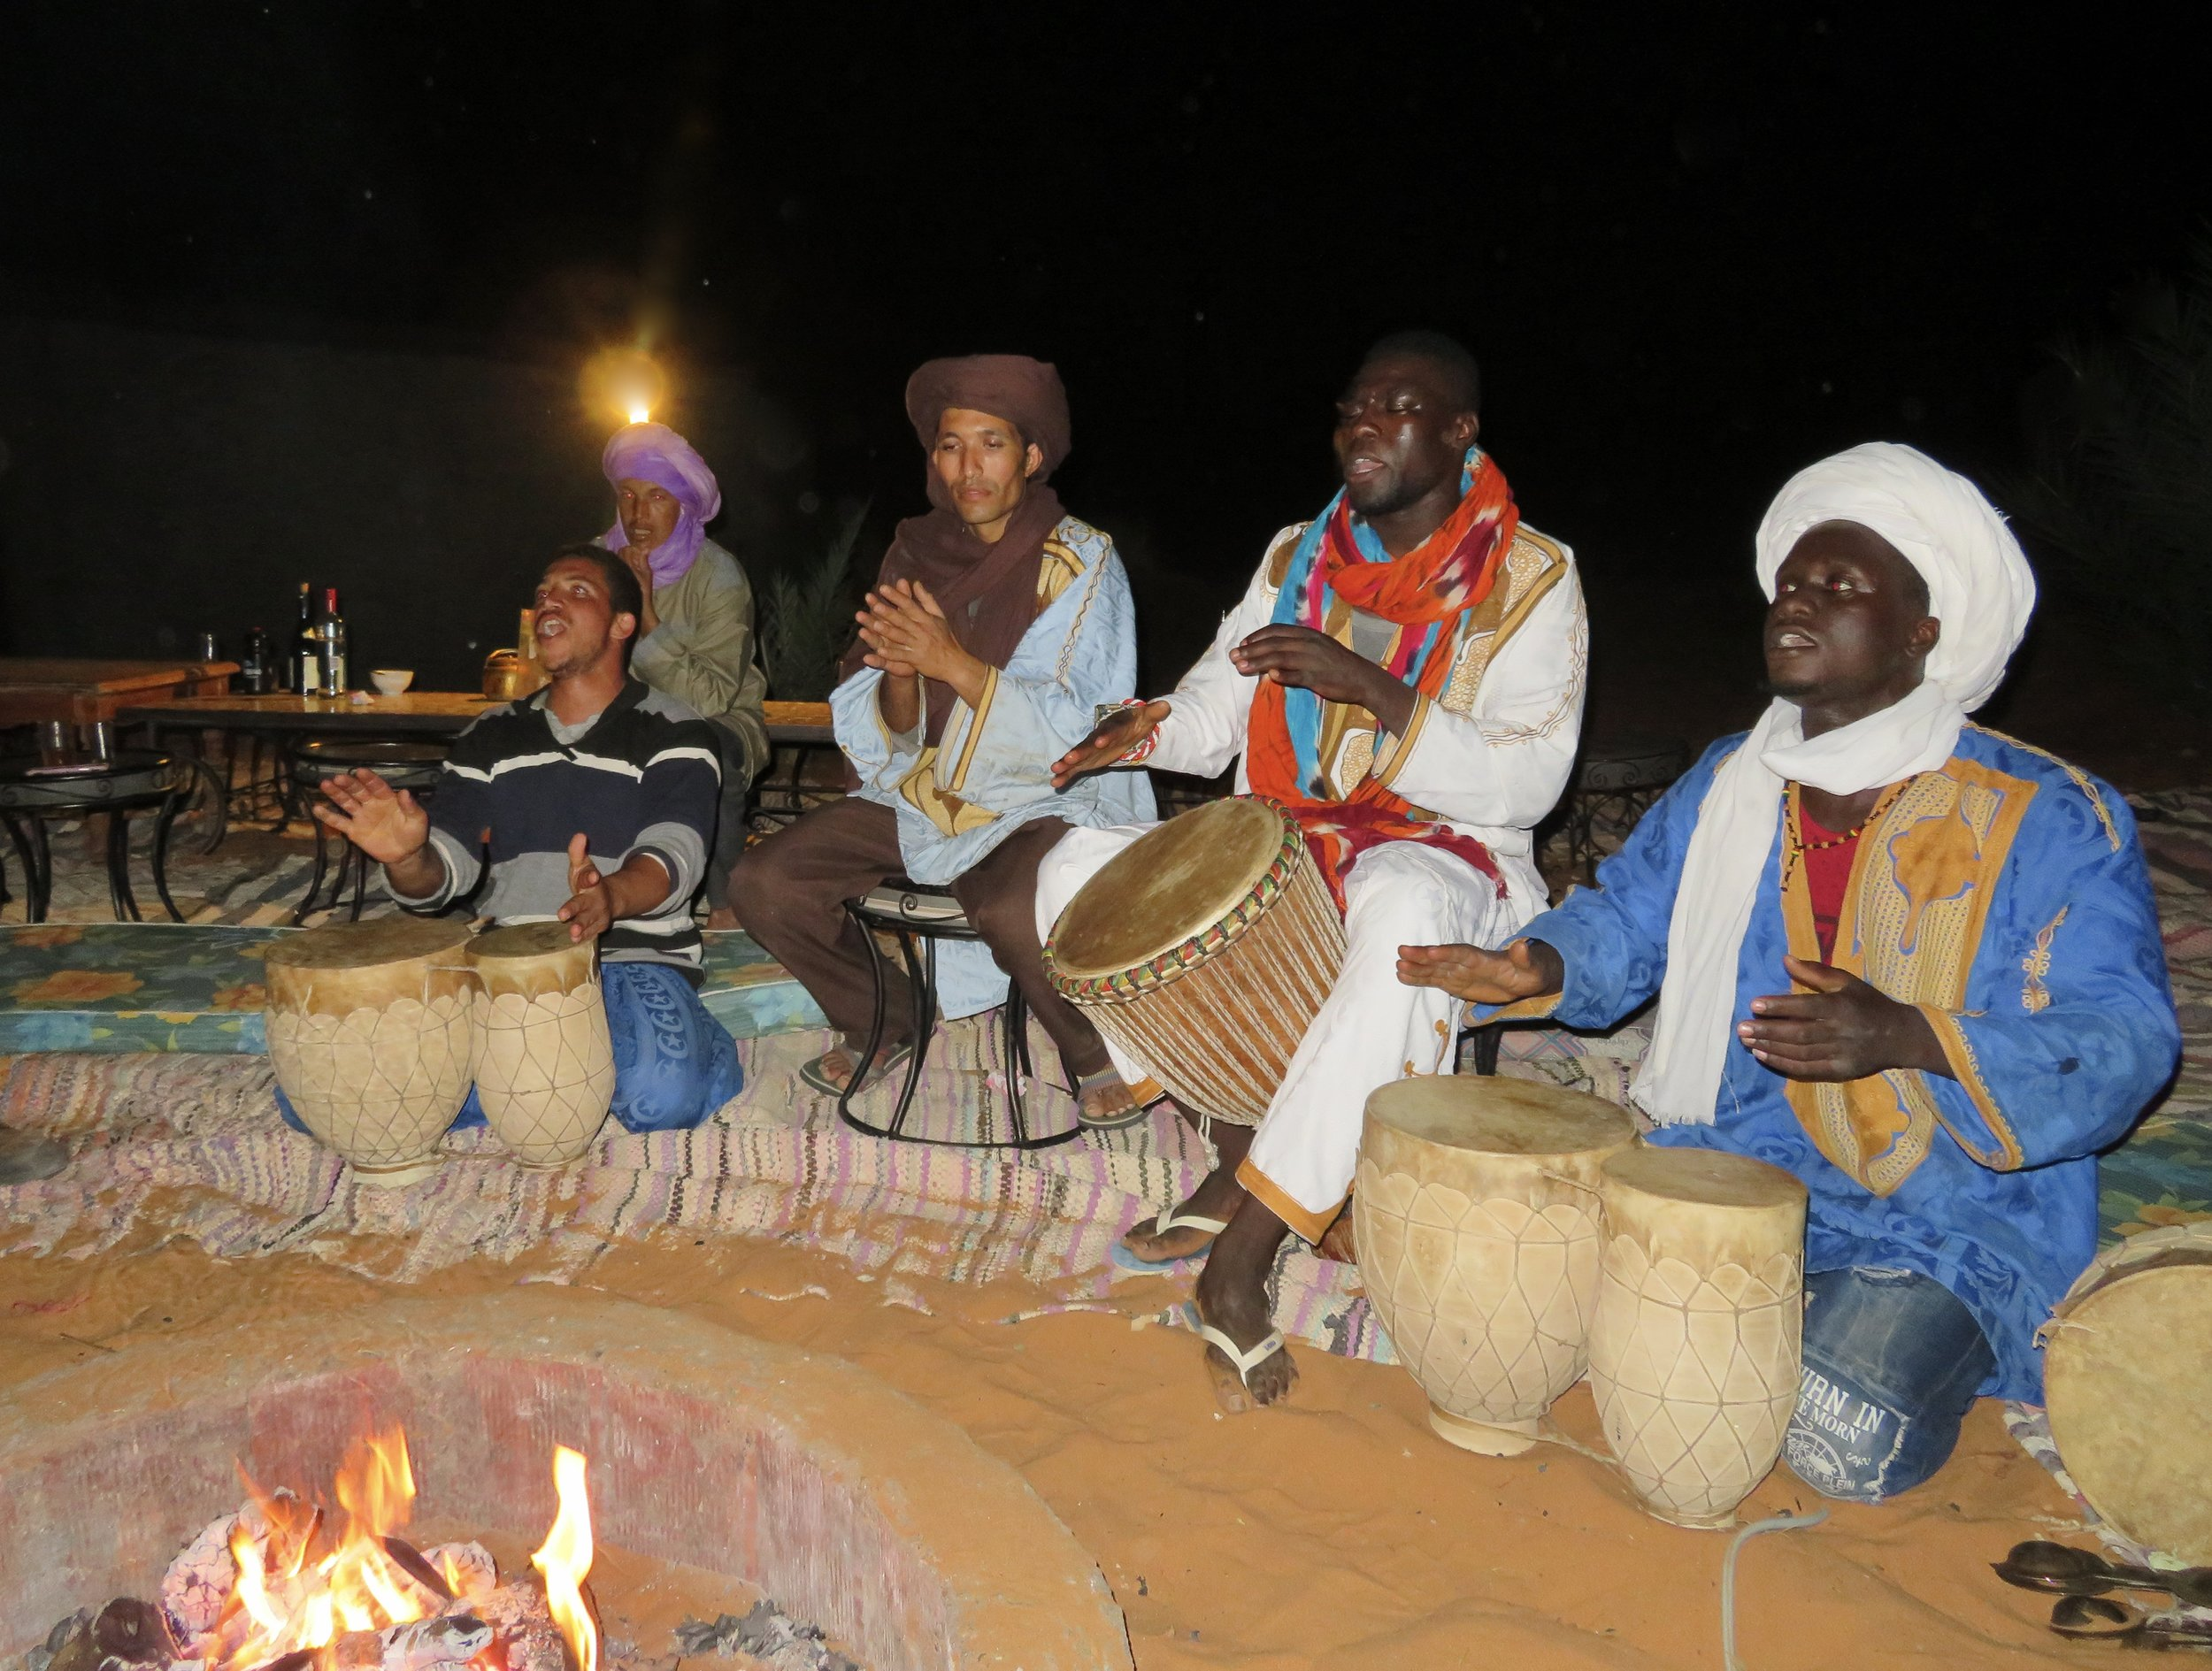 Berber music around the fire